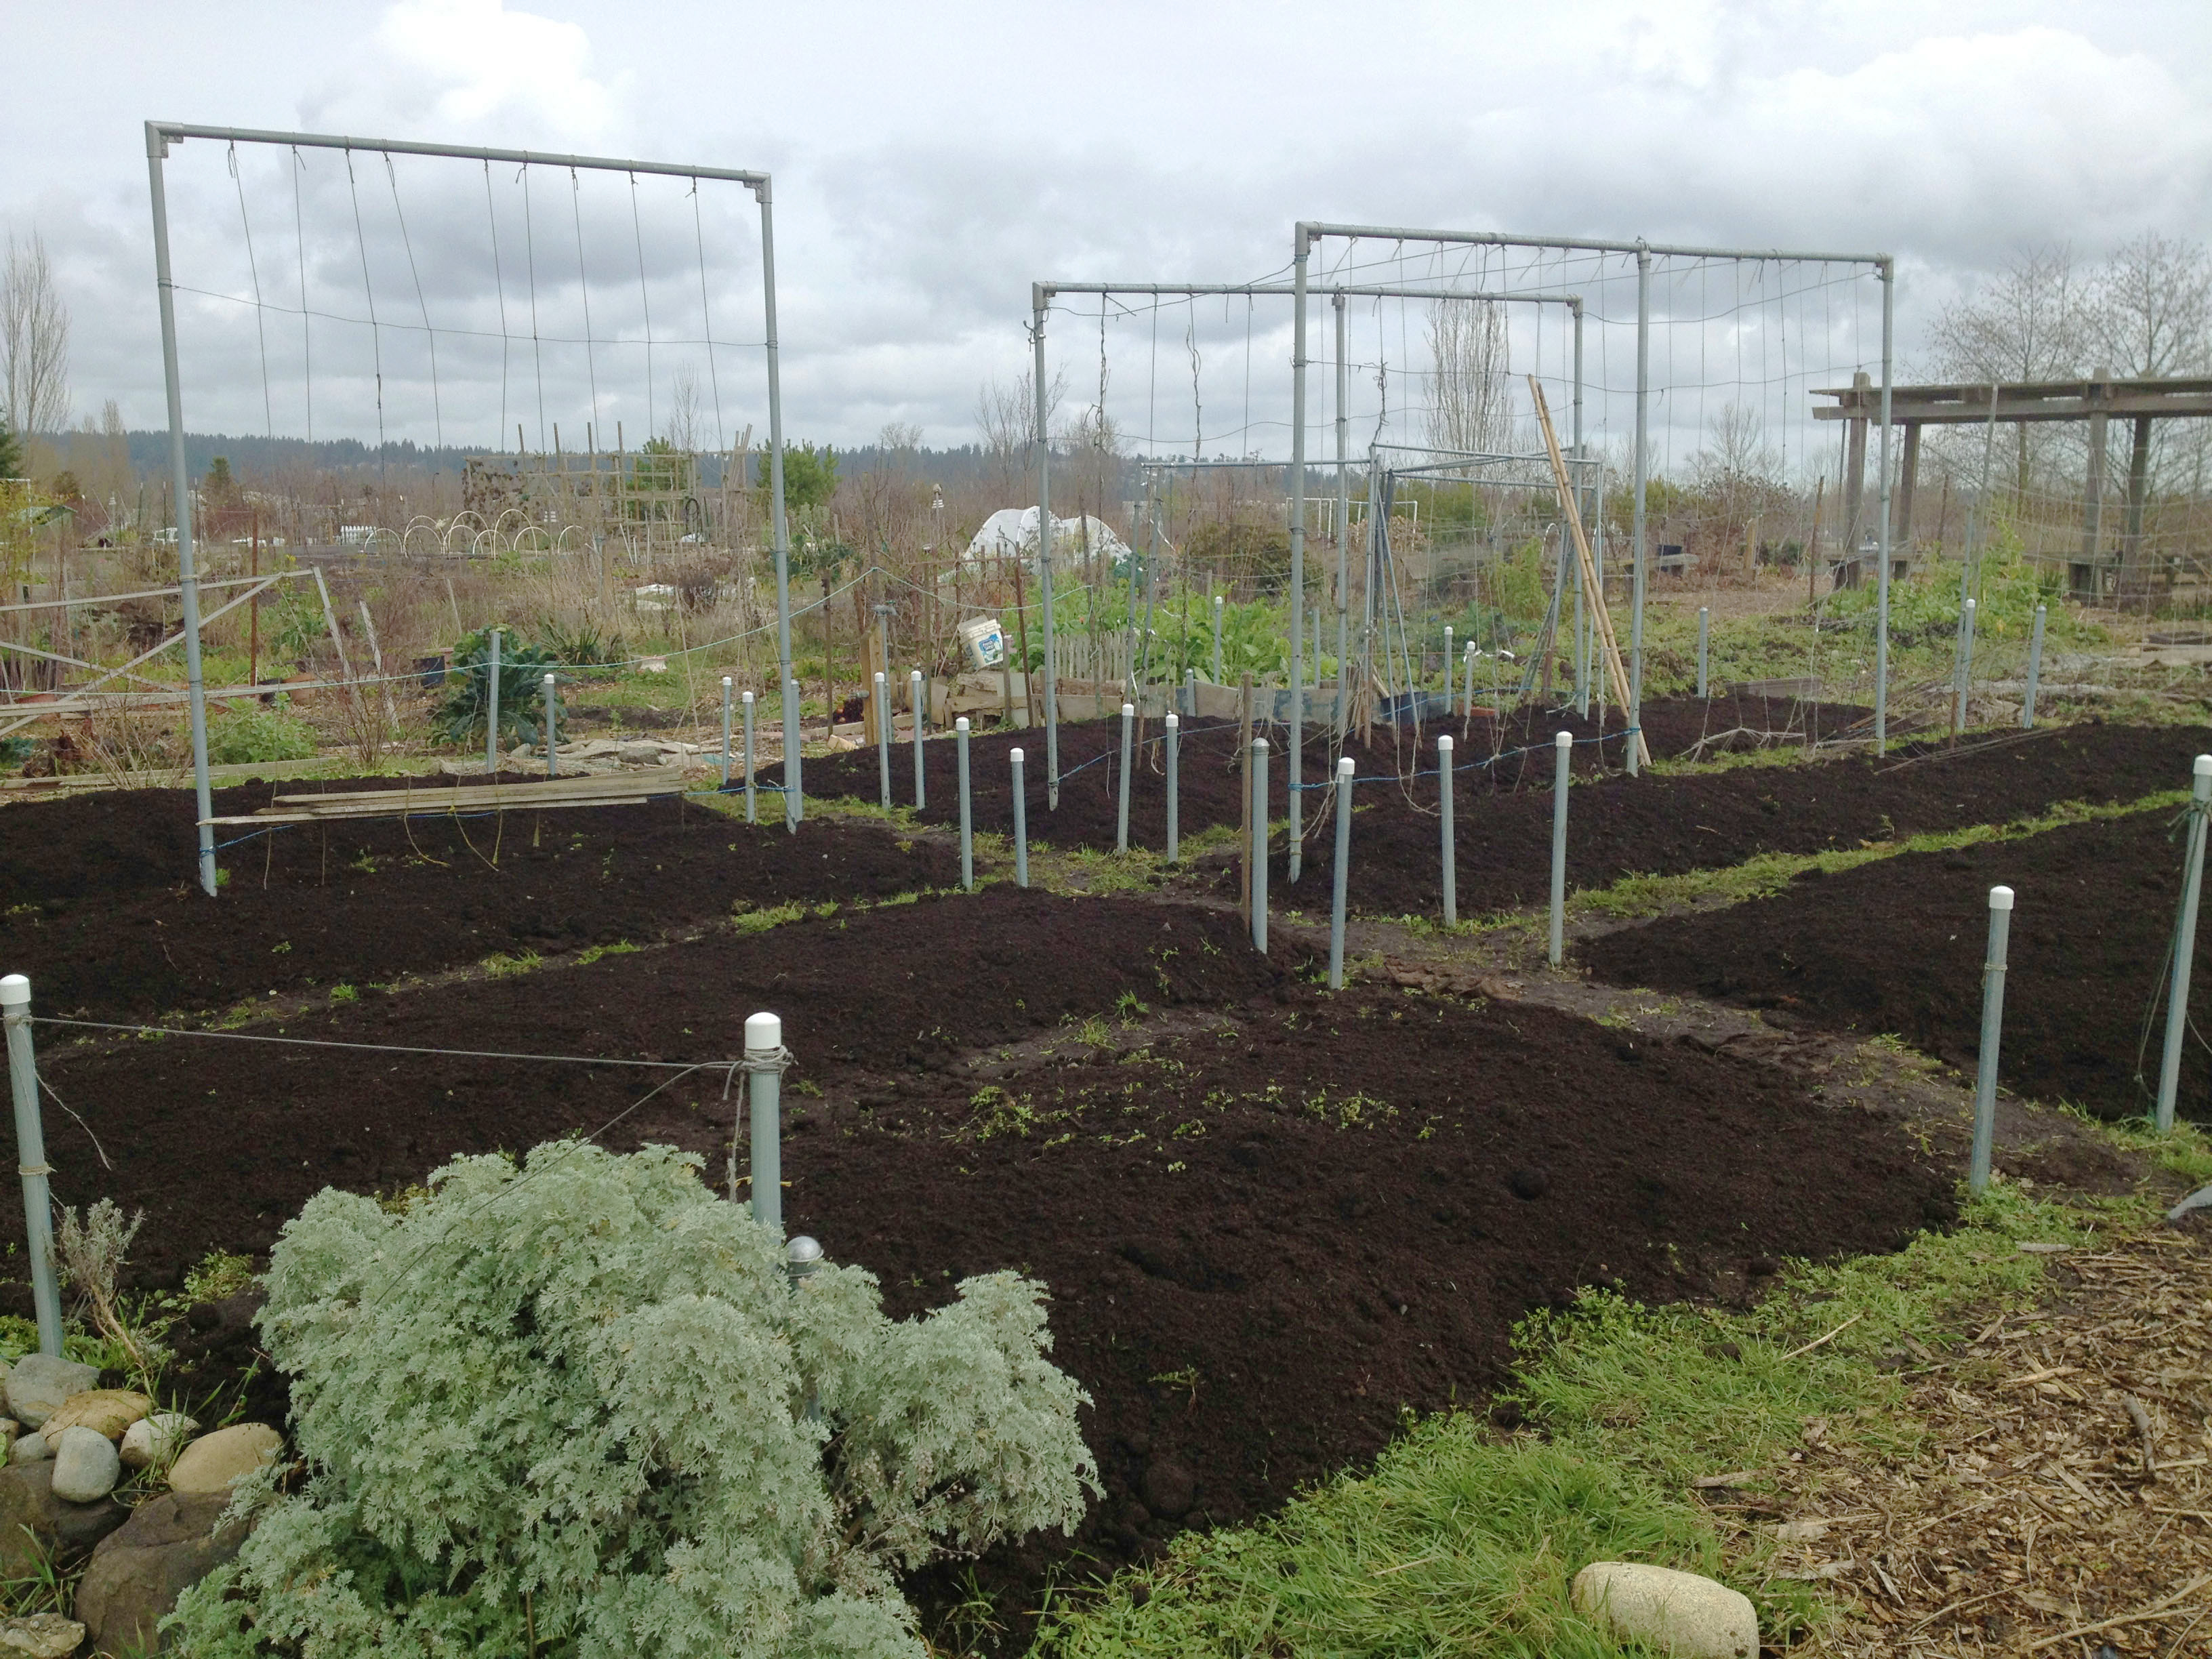 P-Patch Vegetable Gardening: Our Family's Experience on